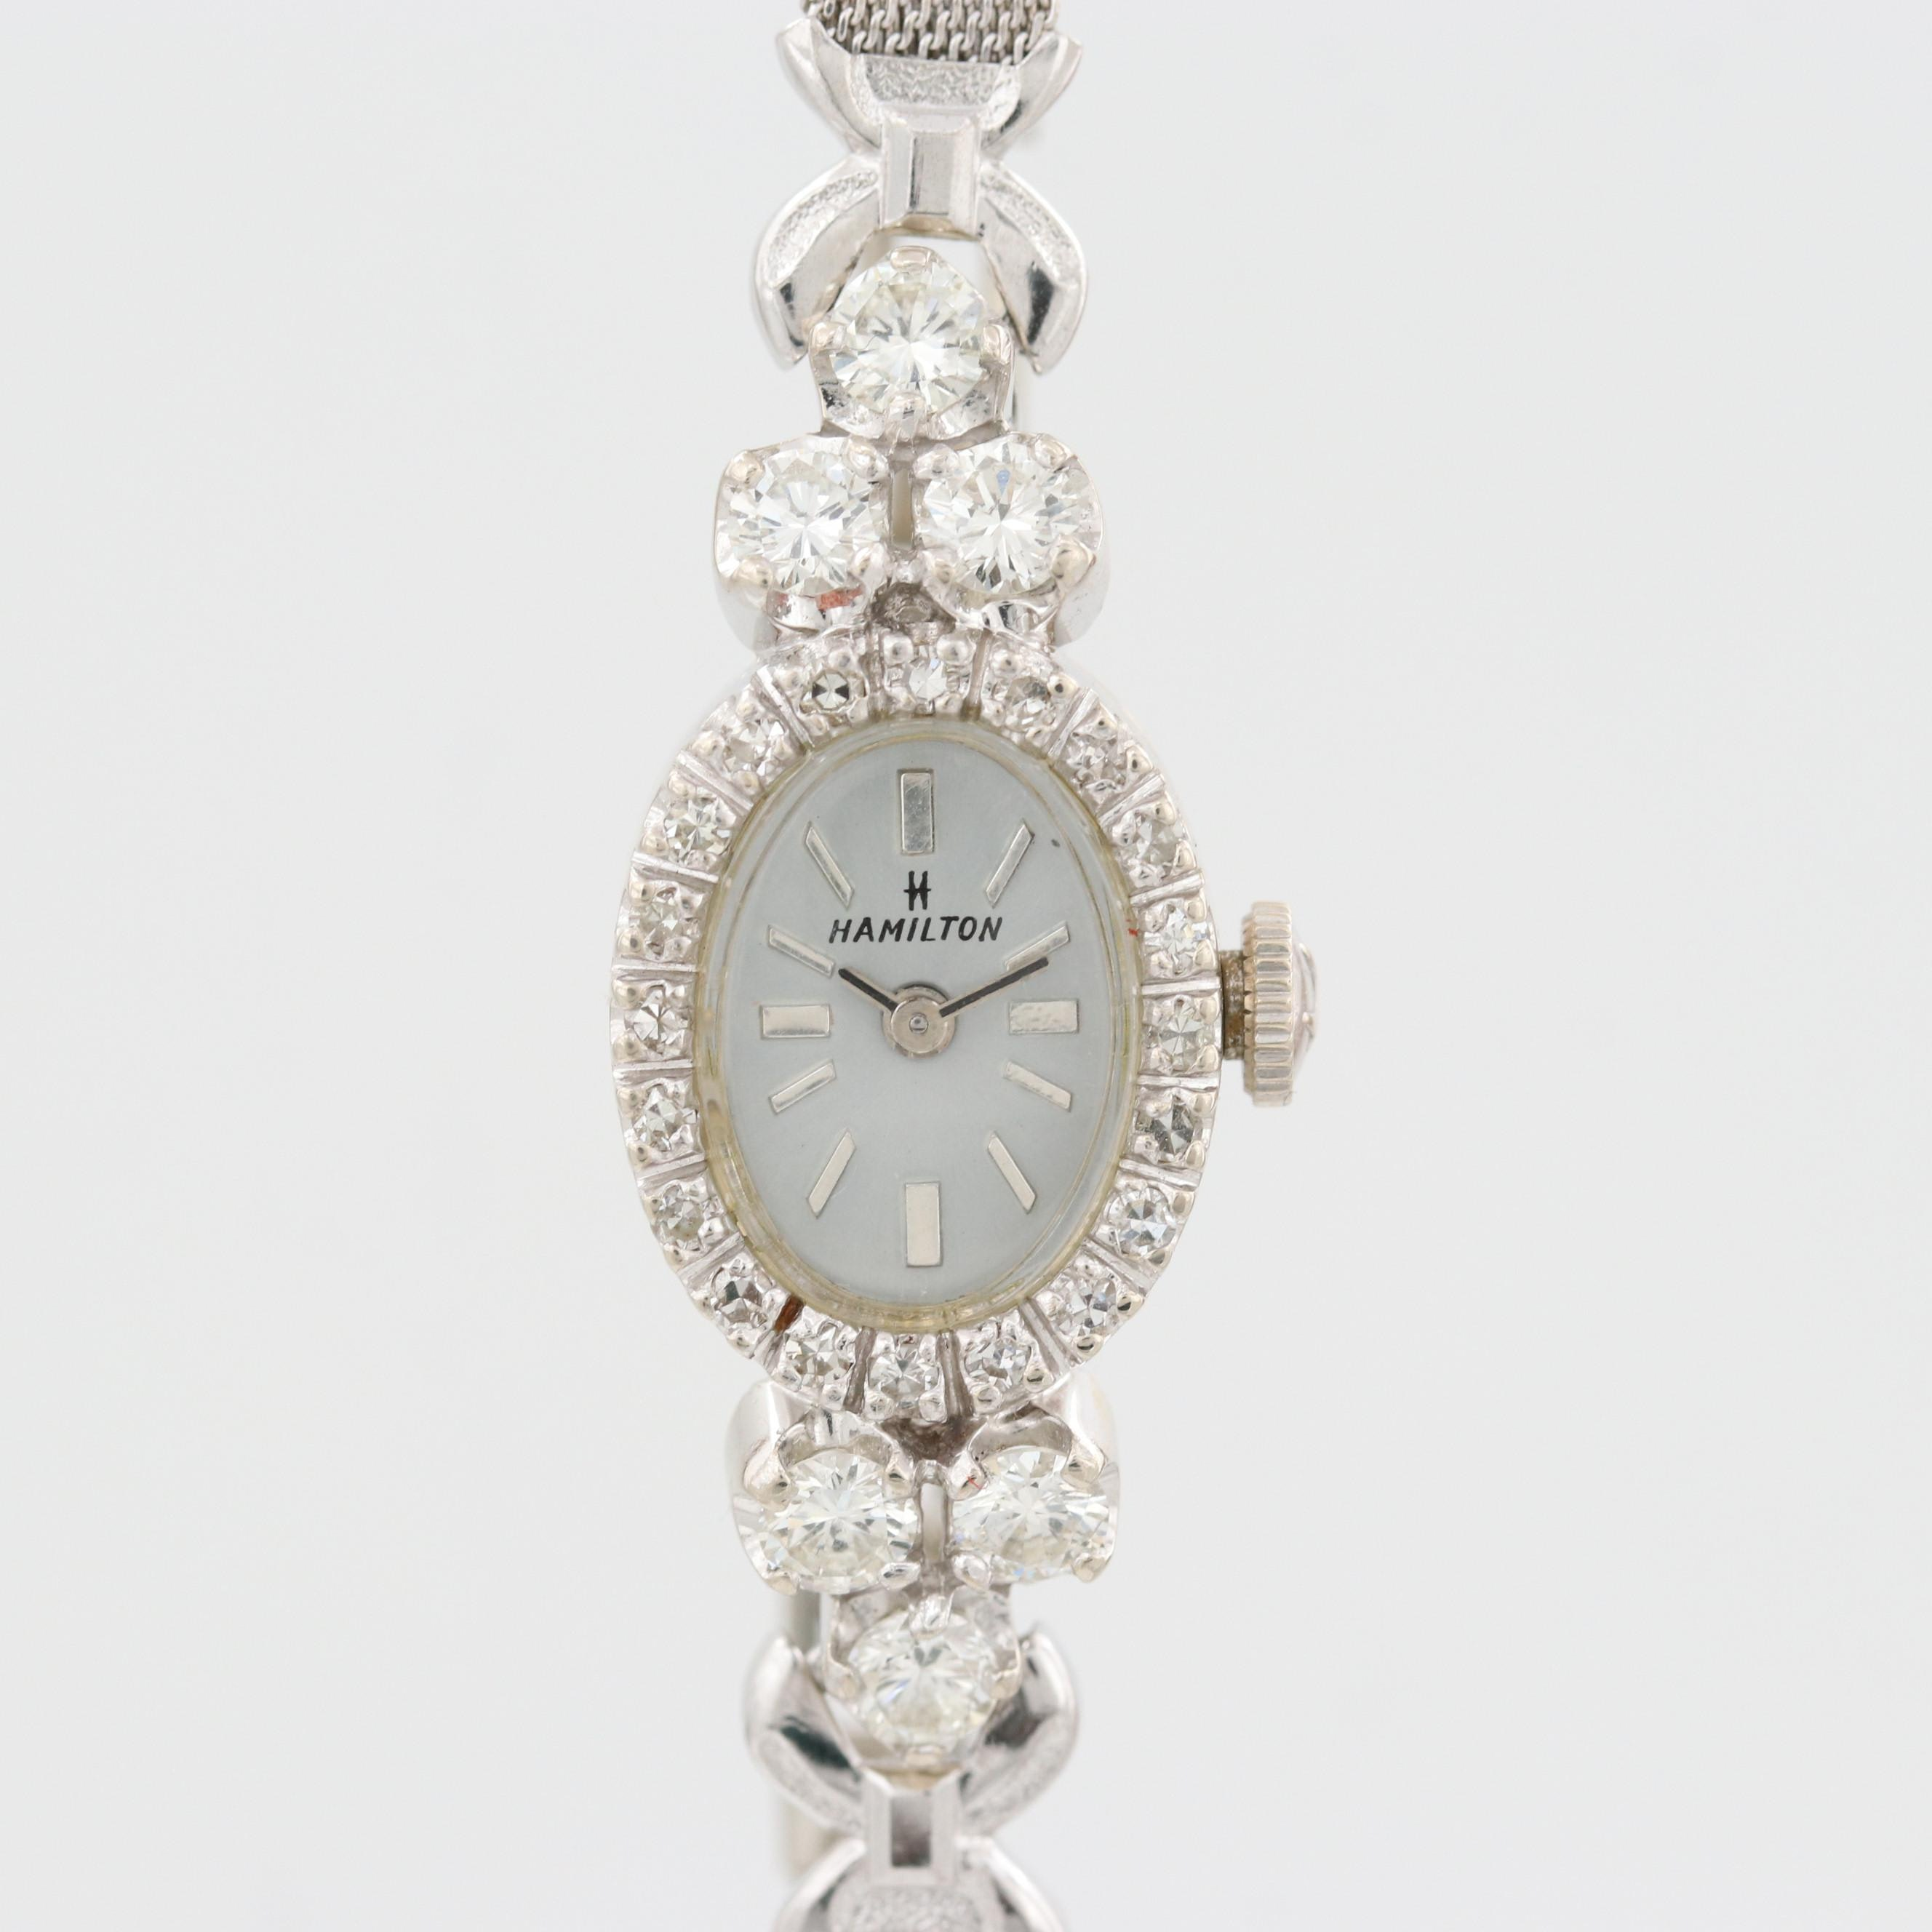 Hamilton 14K White Gold Wristwatch With 1.53 CTW Diamonds